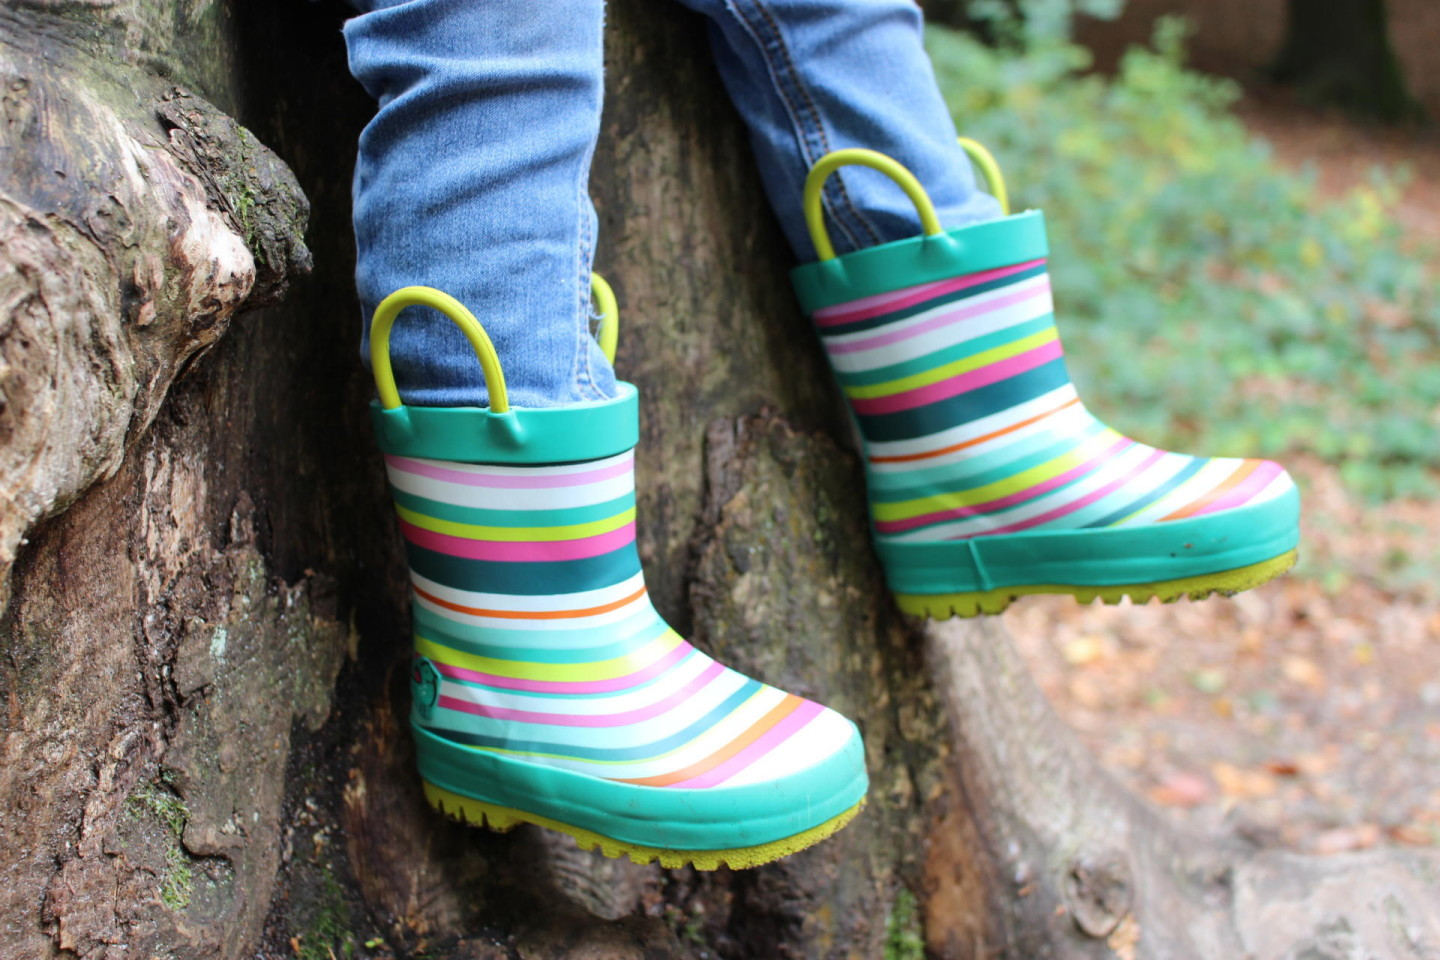 Stomping through the woods in new wellies